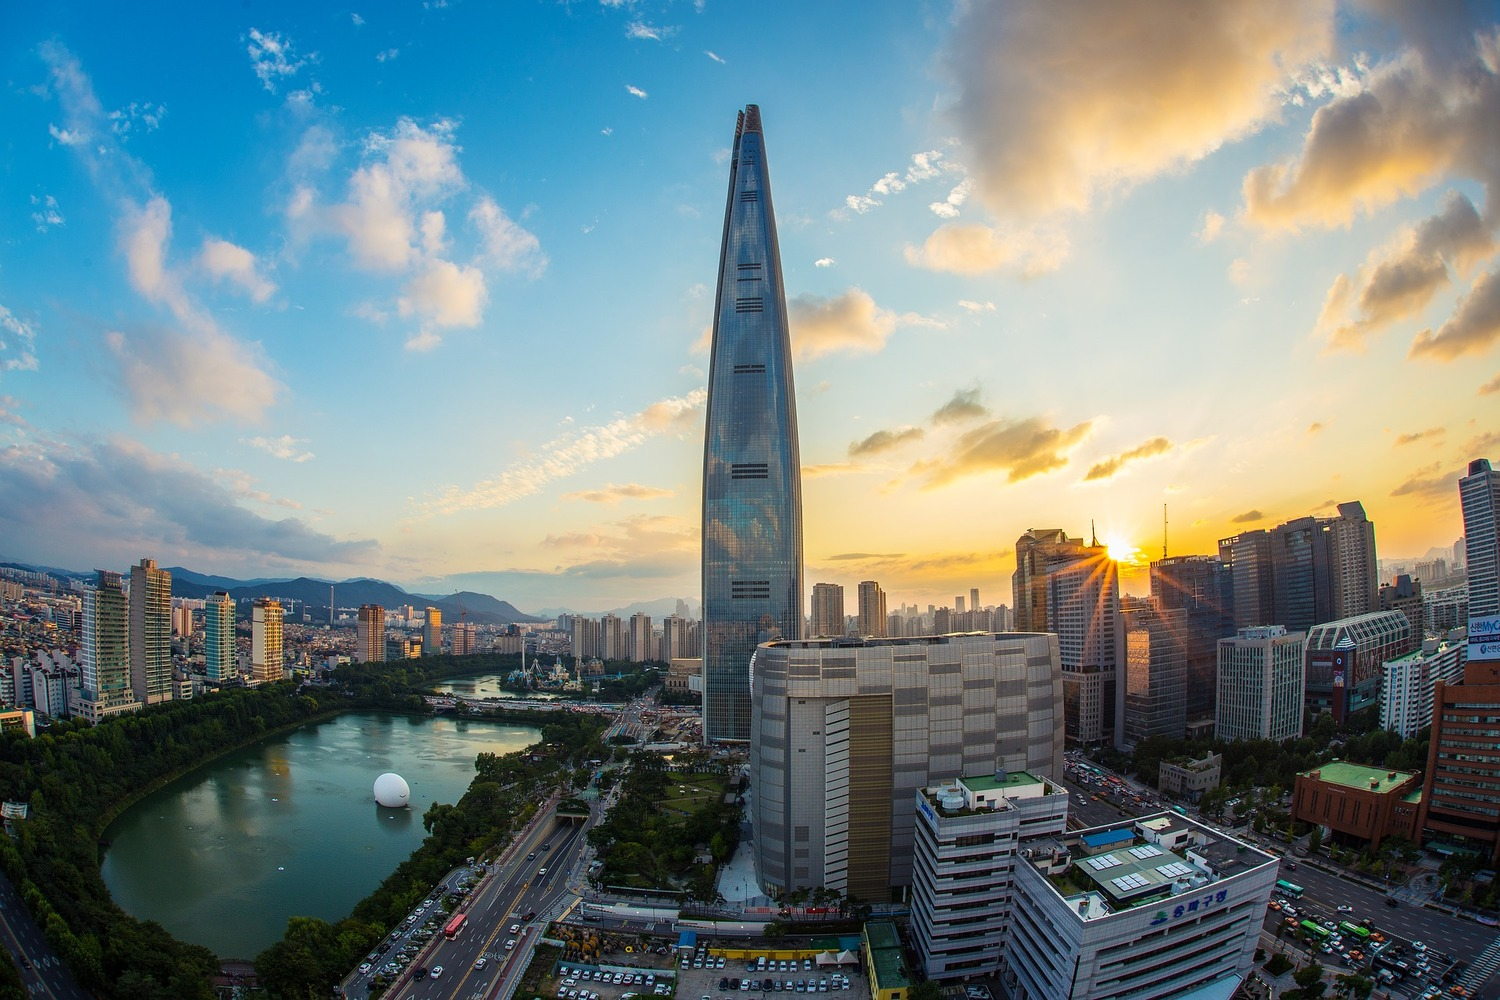 These Are the World's 25 Tallest Buildings,Lotte World Tower. Image © zjaaosldk, bajo licencia CC0